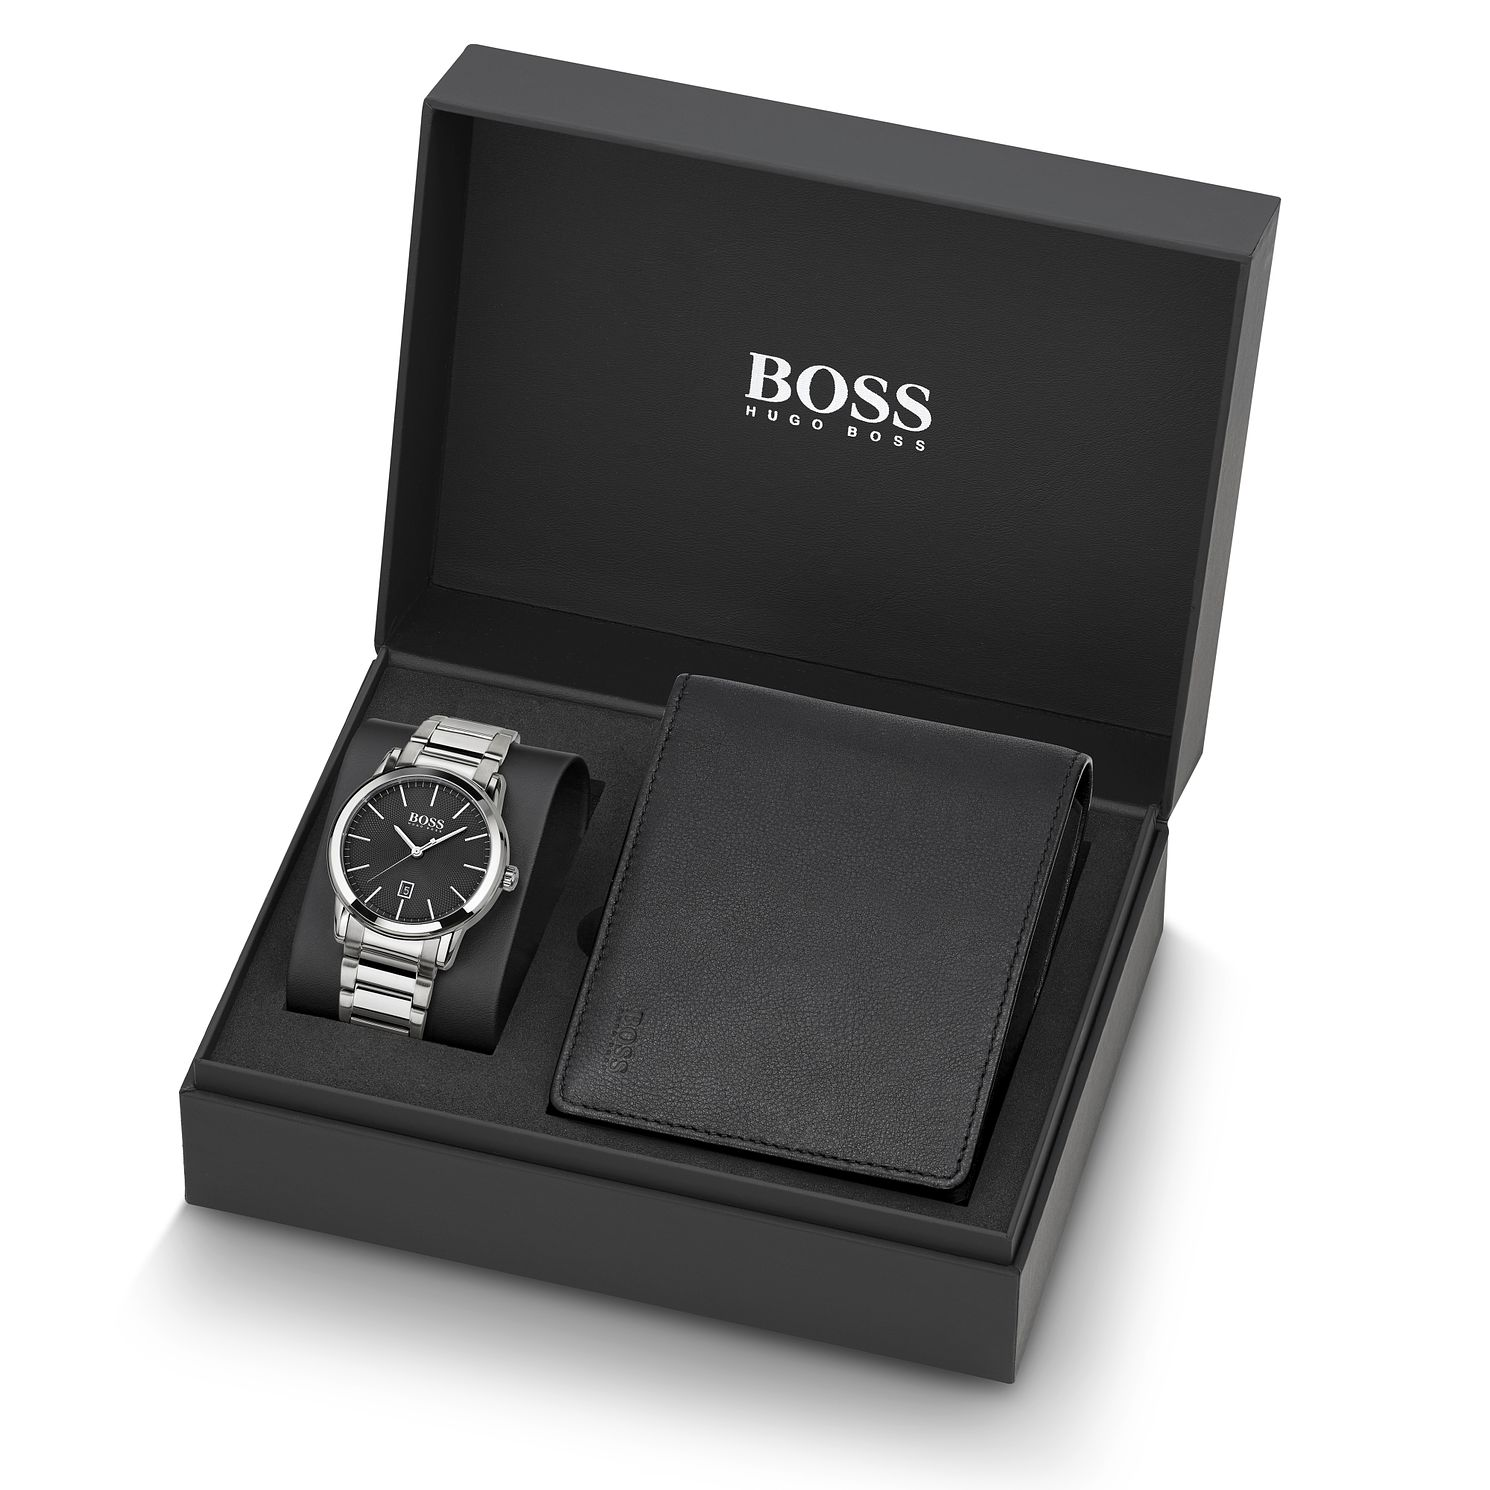 BOSS Men's Bracelet Watch & Black Leather Wallet Gift Set - Product number 2776529